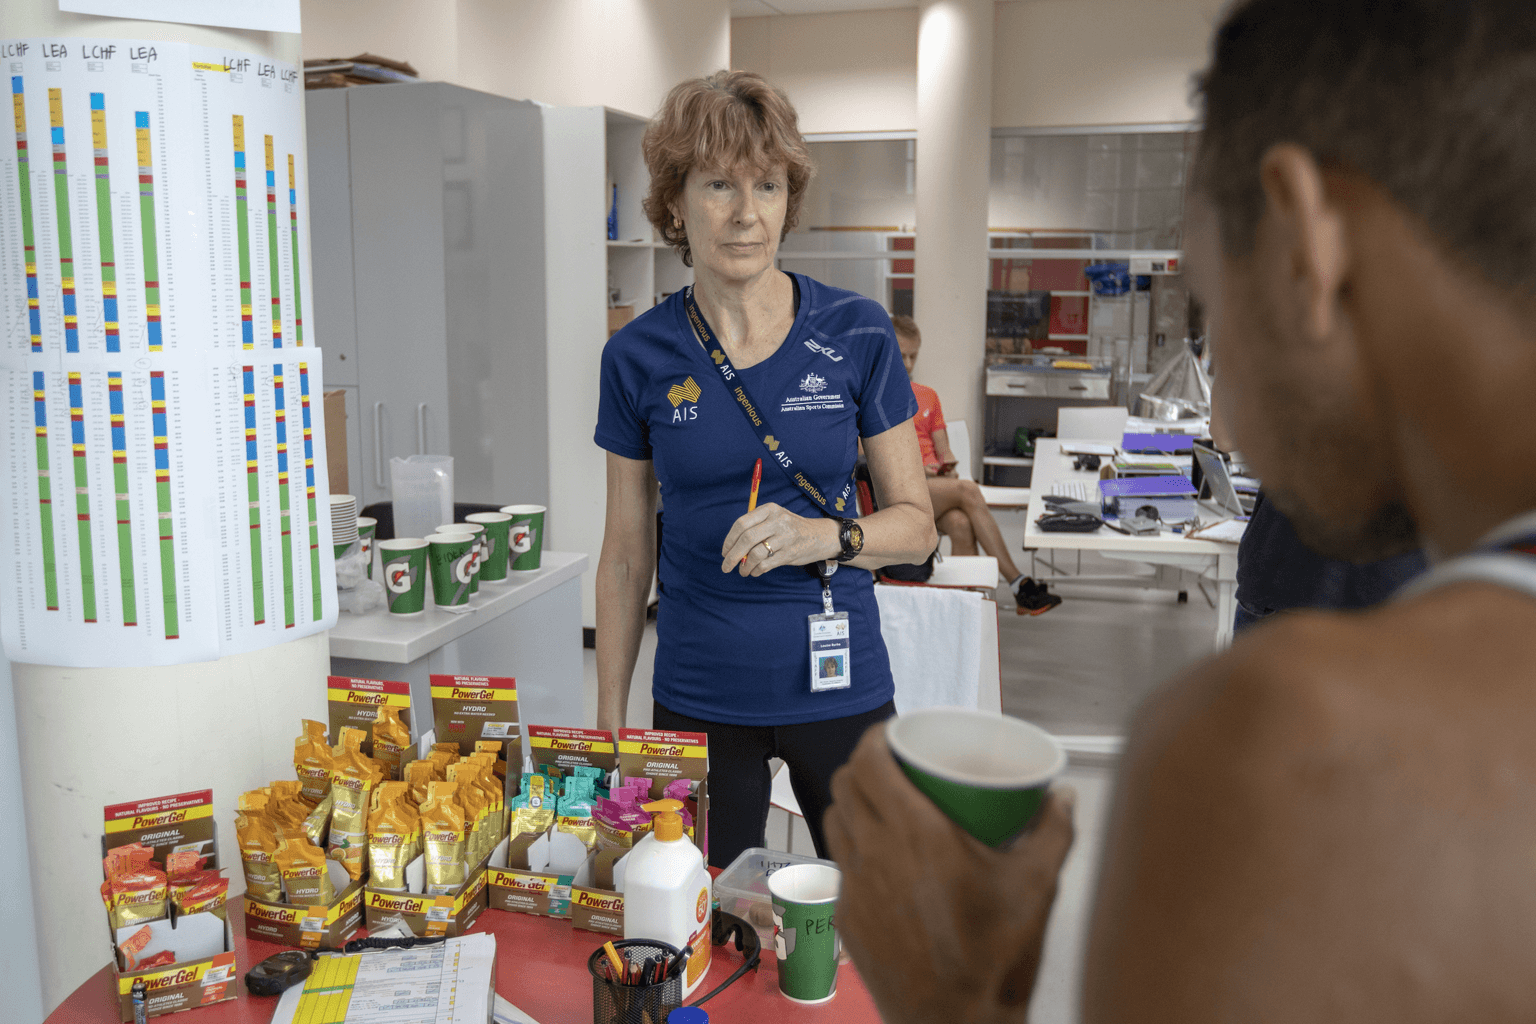 Professor Louise Burke stands behind a table with sport supplements and papers, while and athlete drinks from a cup.